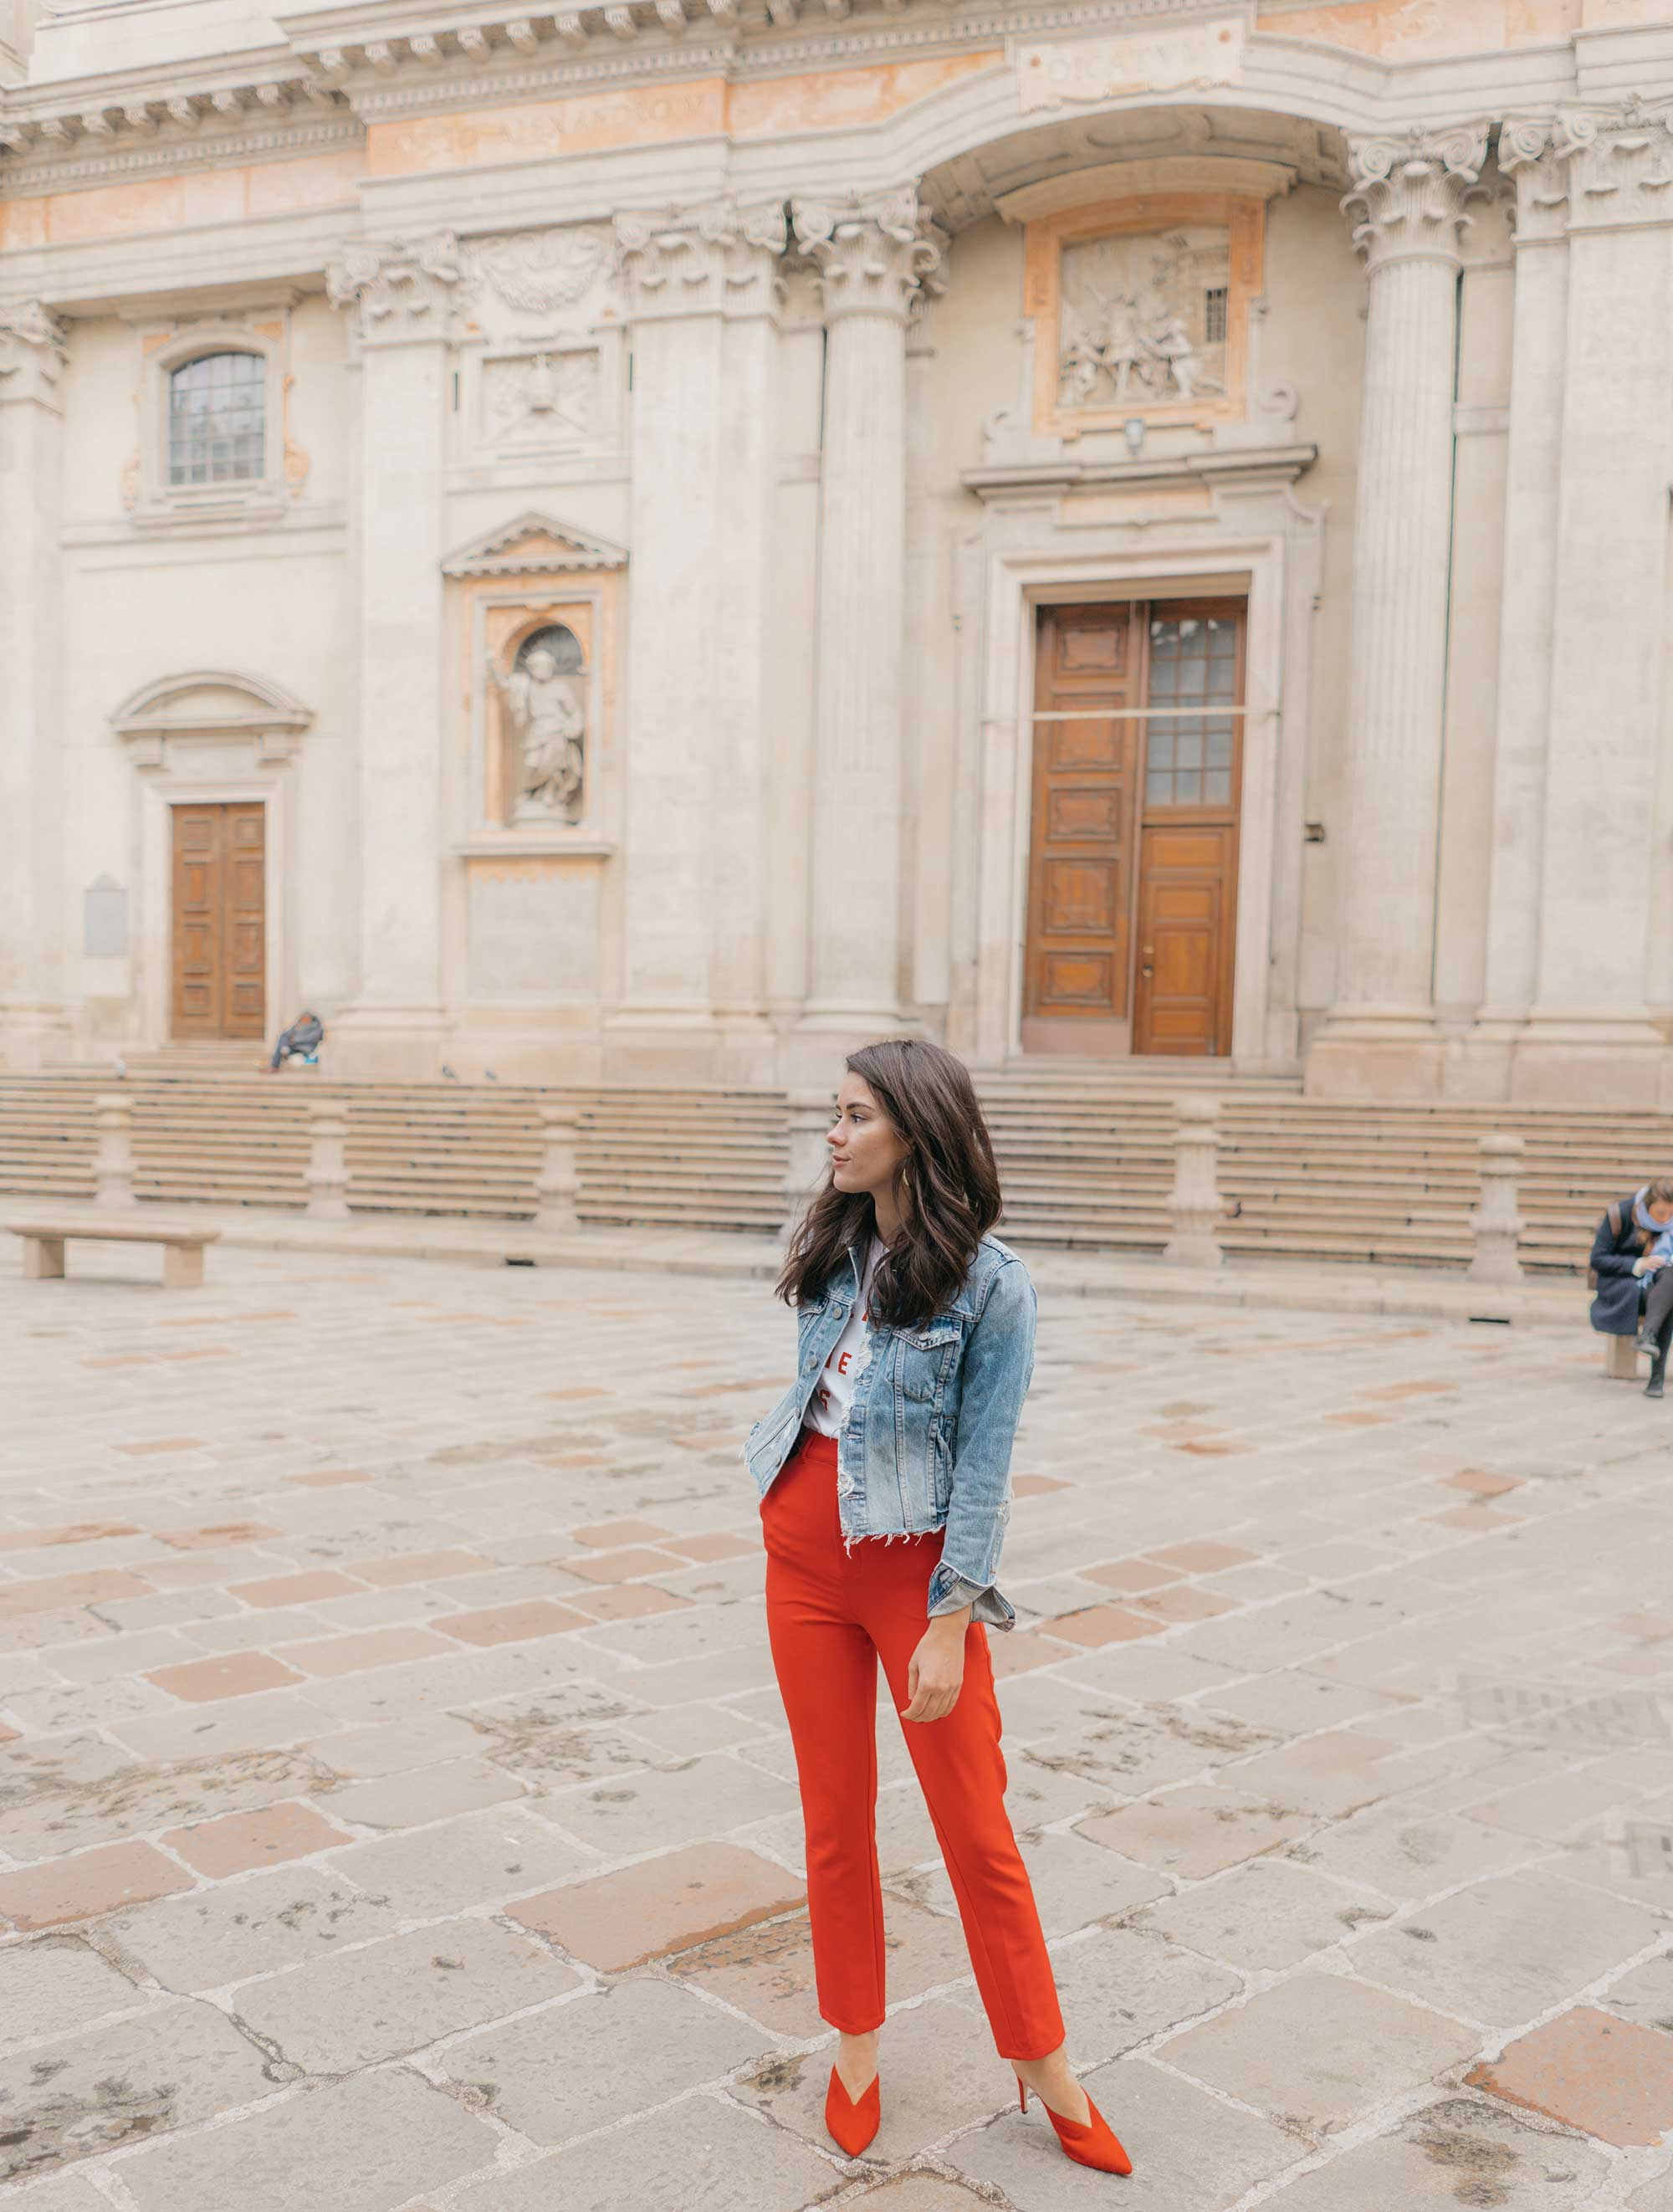 Red-Skinny-Pants,-All-You-Need-Is-Love'-Slogan-T-Shirt,-Cara-Cropped-Denim-Jacket,-Milan-Spring-Outfit4.jpg